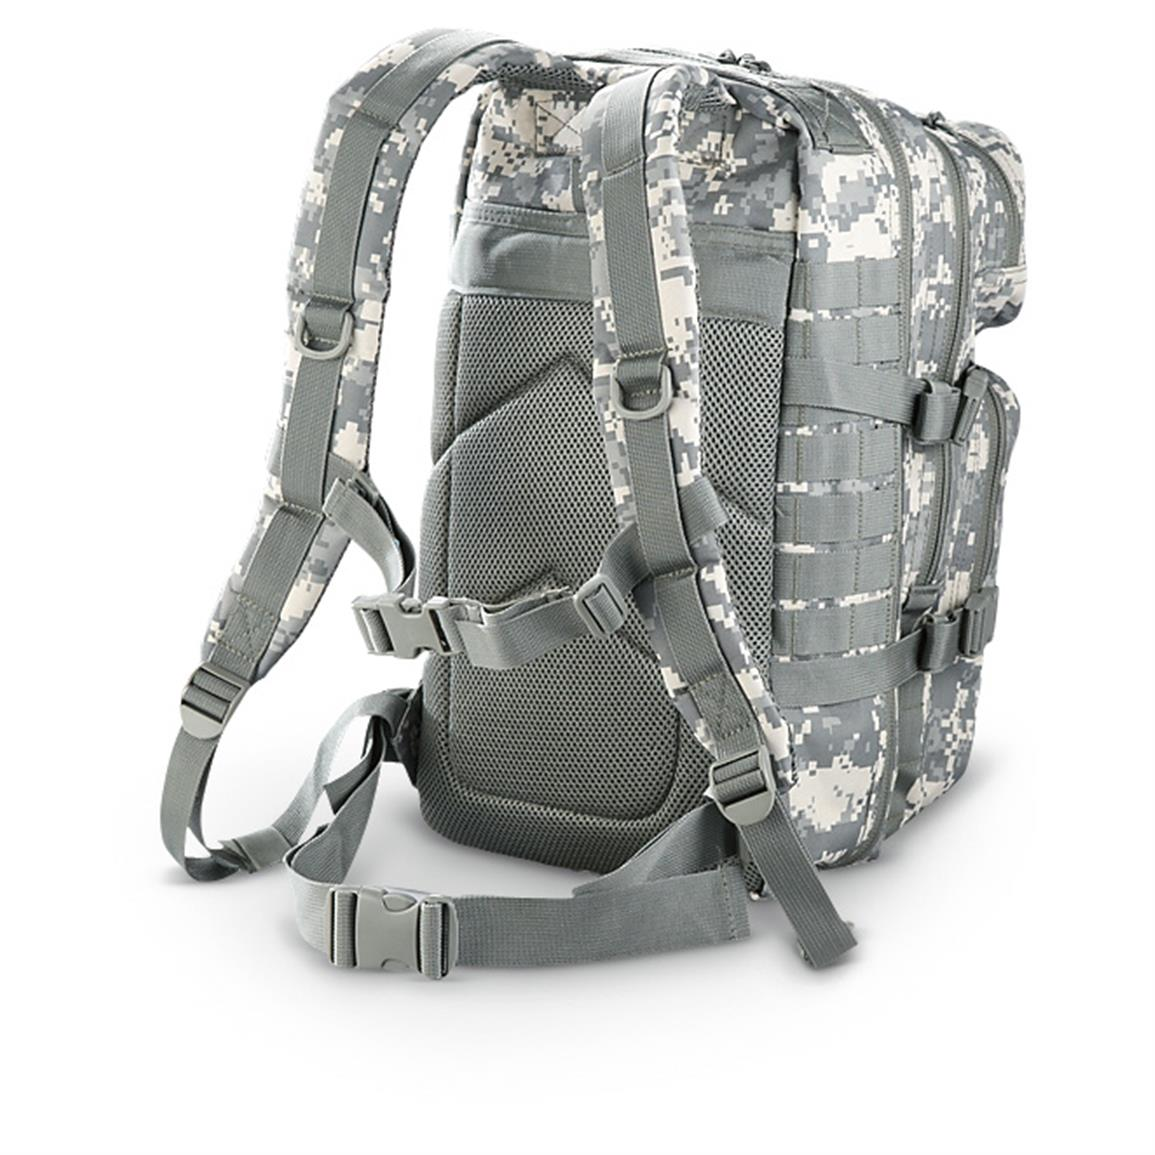 Padded for easy carrying